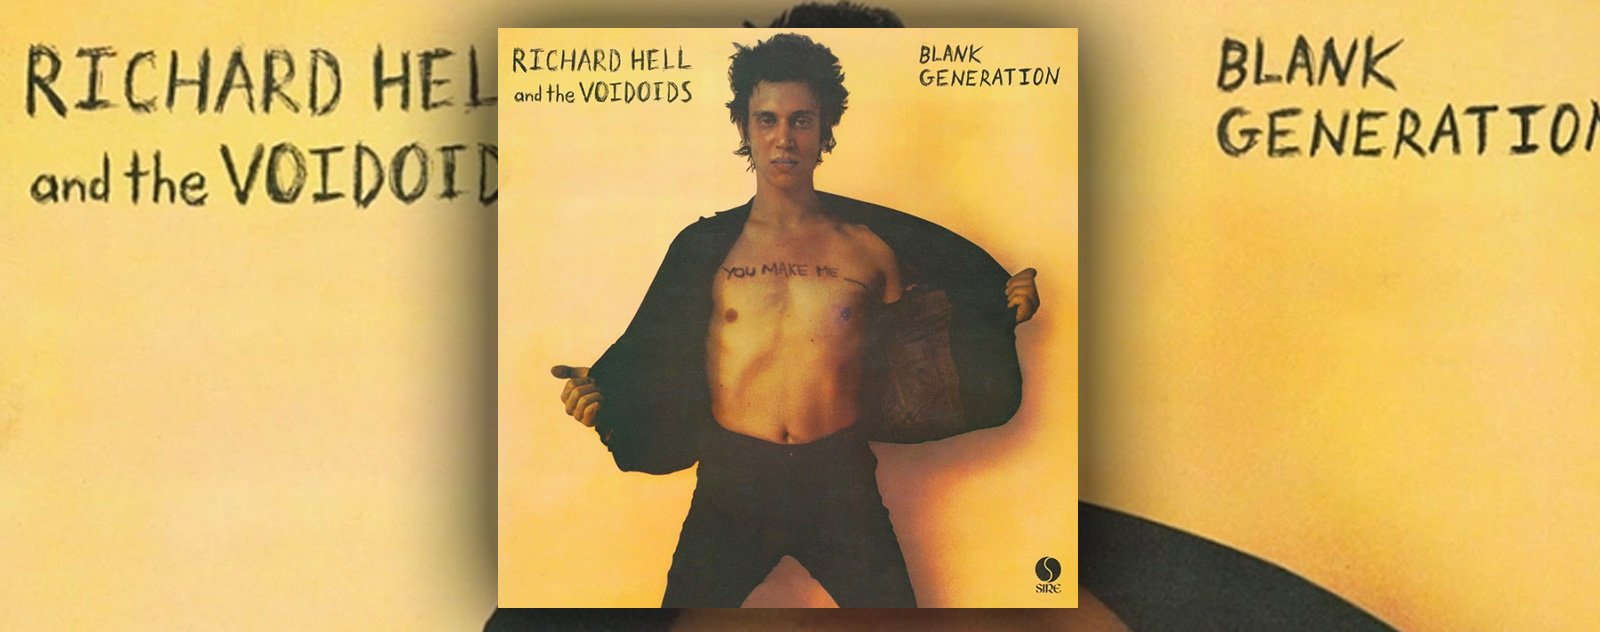 Richard Hell and the Voidoids Blank Generation